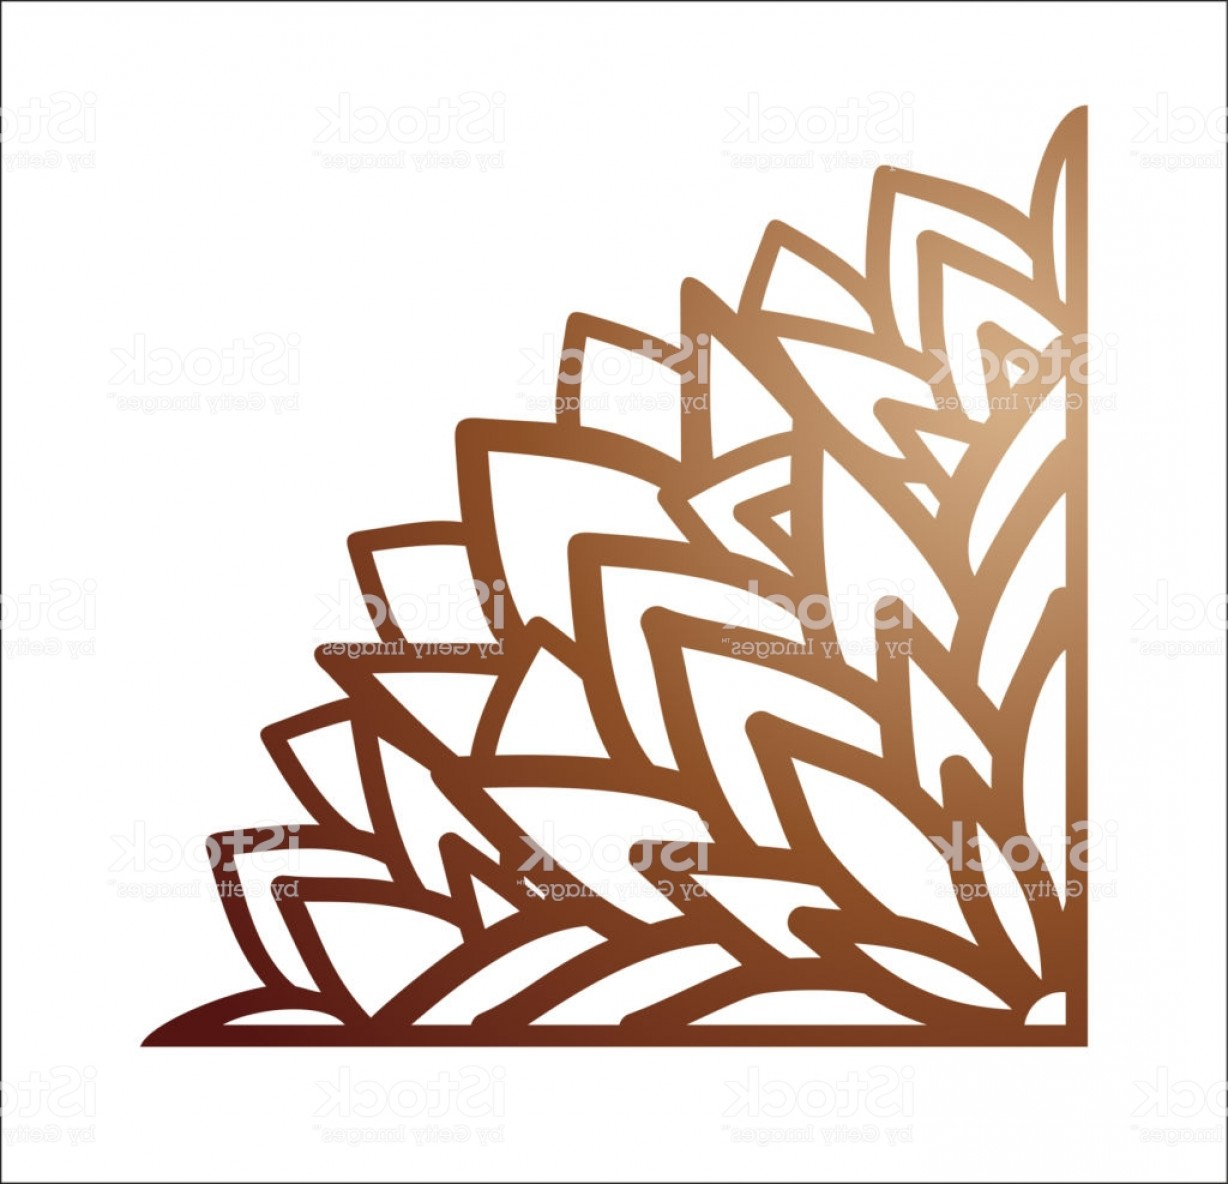 Wrought Iron Vector For CNC: Laser Cutting Corner Vector Template For Paper Cutting Metal And Woodcut Tapestry Gm